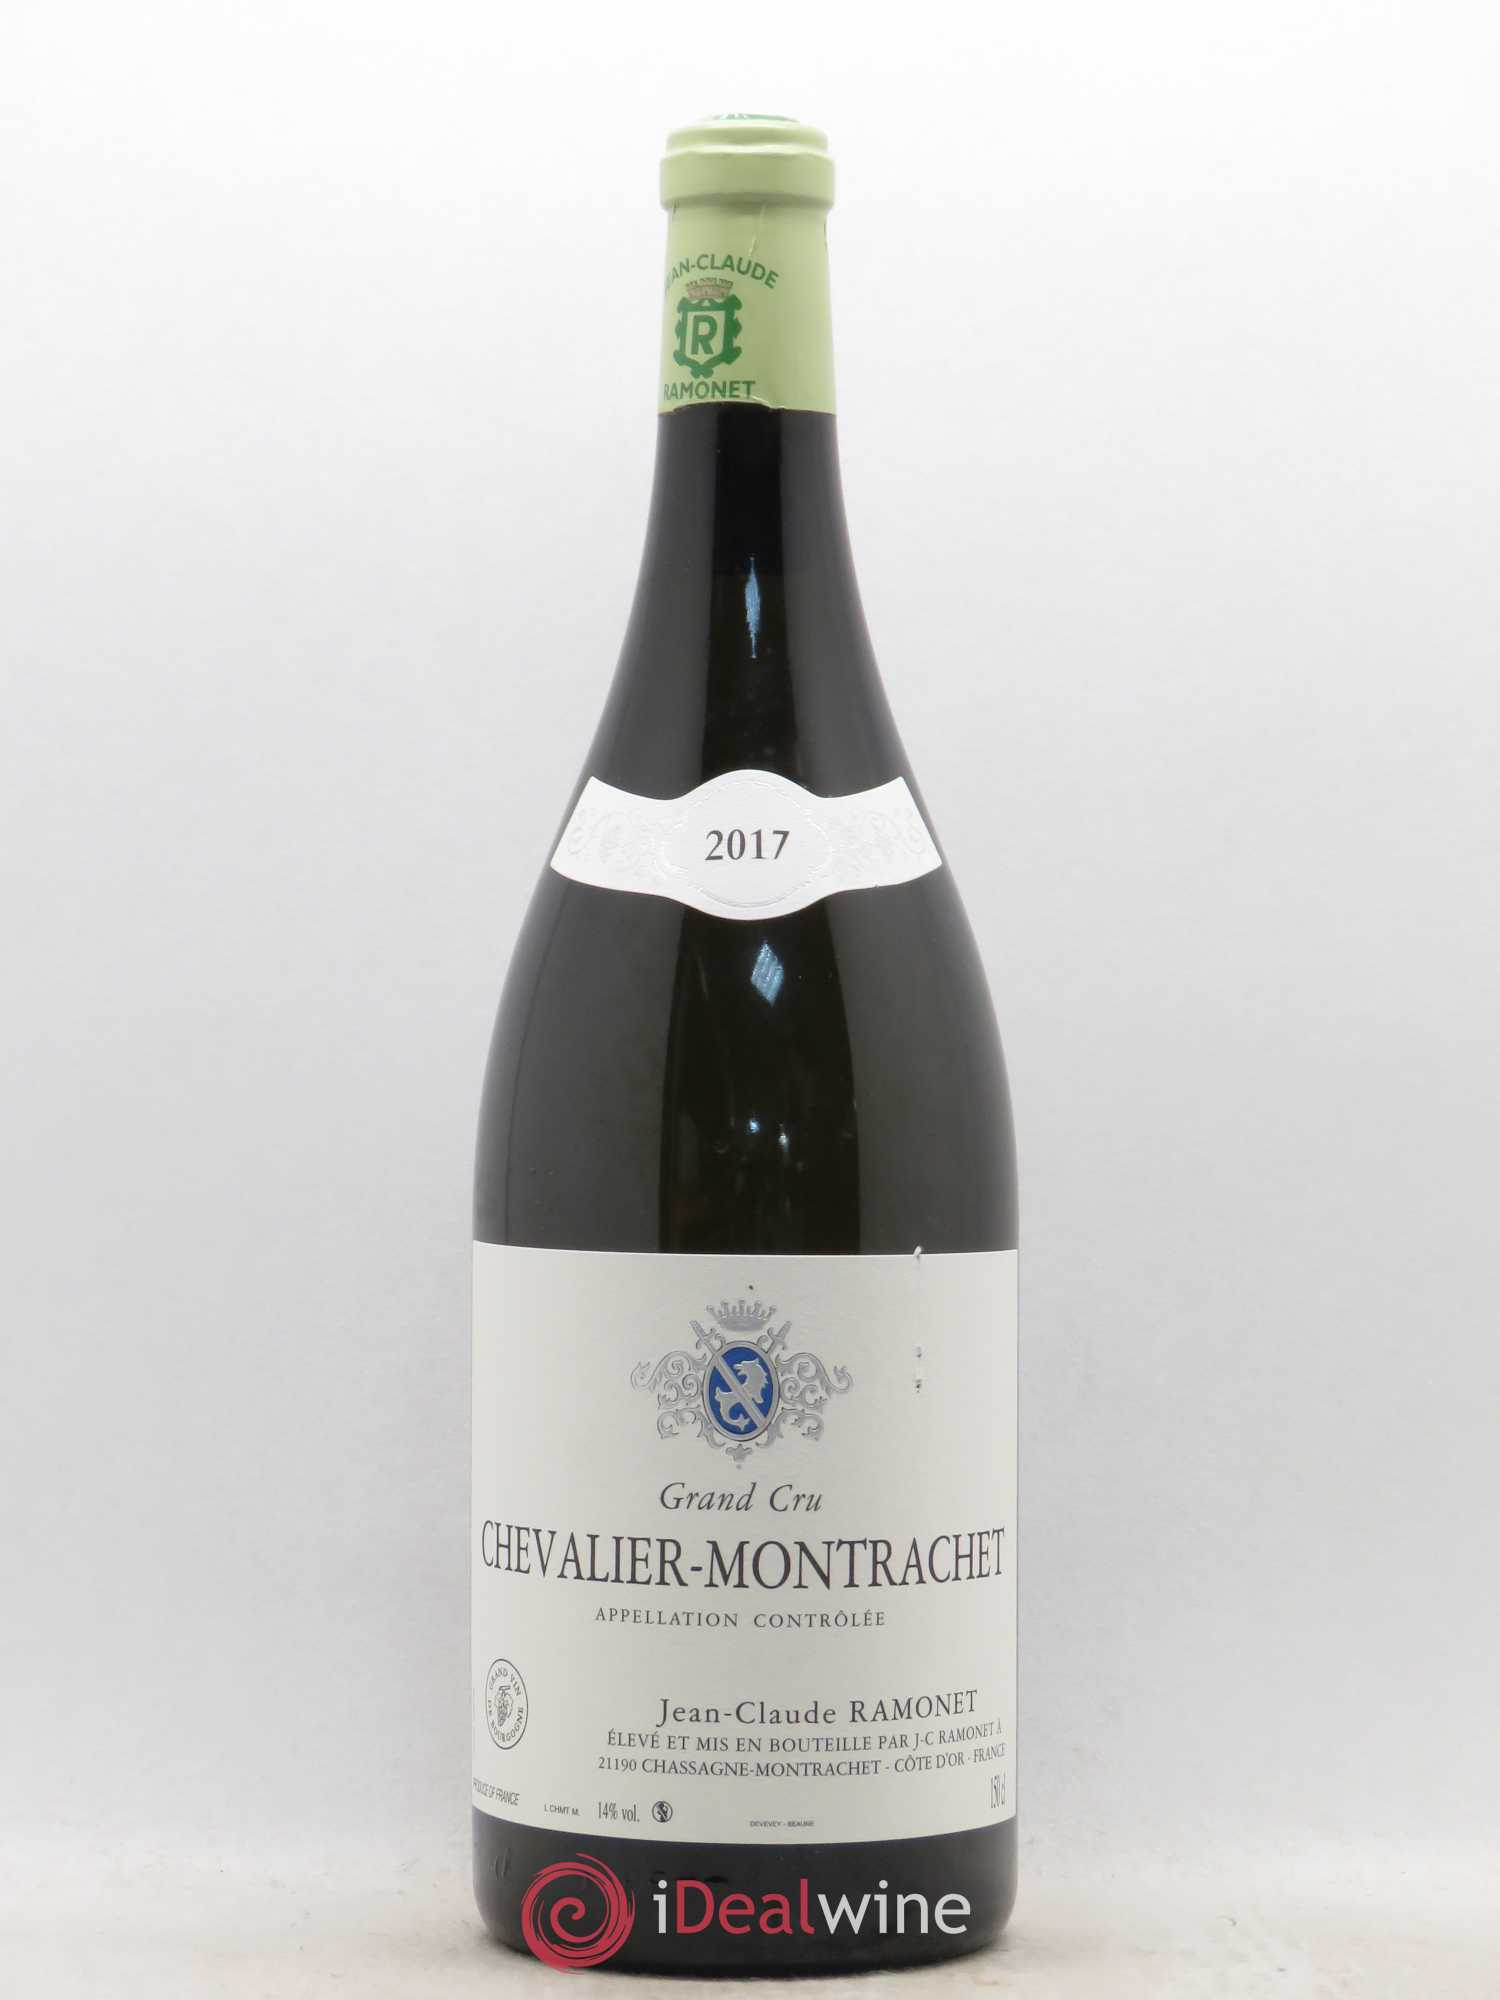 Chevalier-Montrachet Grand Cru Ramonet (Domaine)  2017 - Lot de 1 Magnum